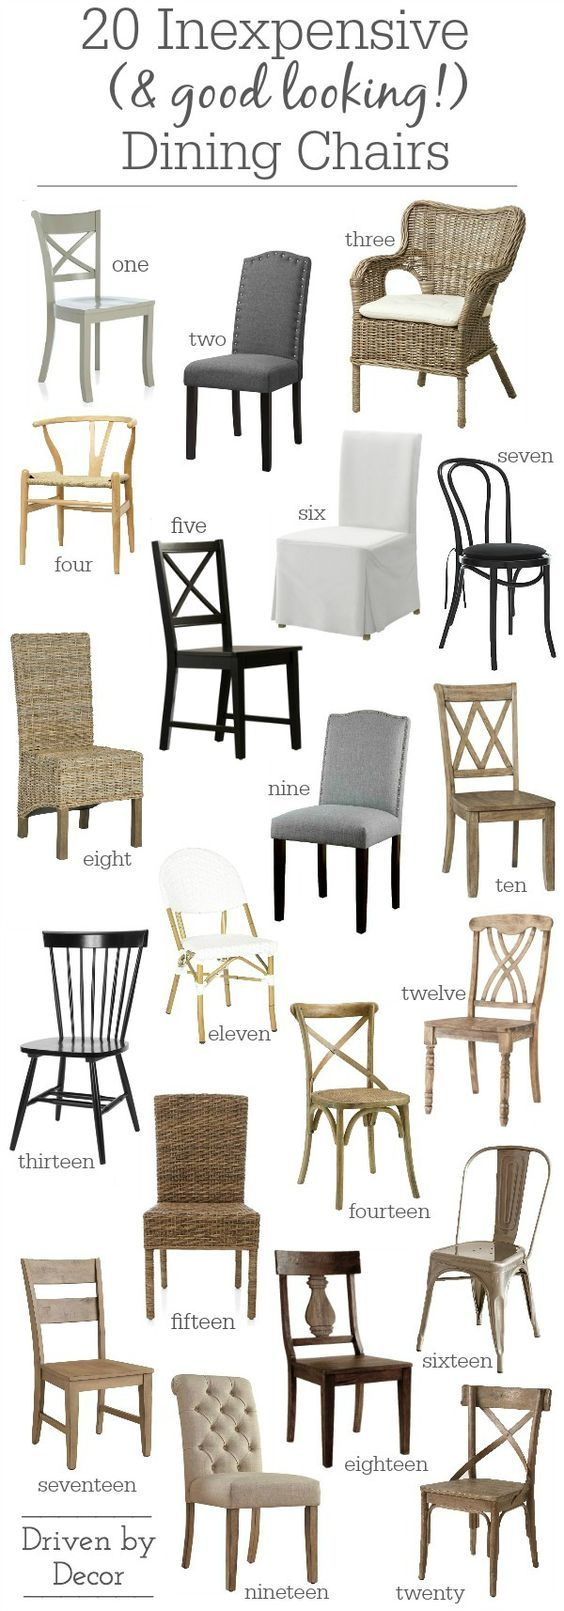 Beau 15 Inexpensive Dining Chairs (That Donu0027t Look Cheap!) | Good ...